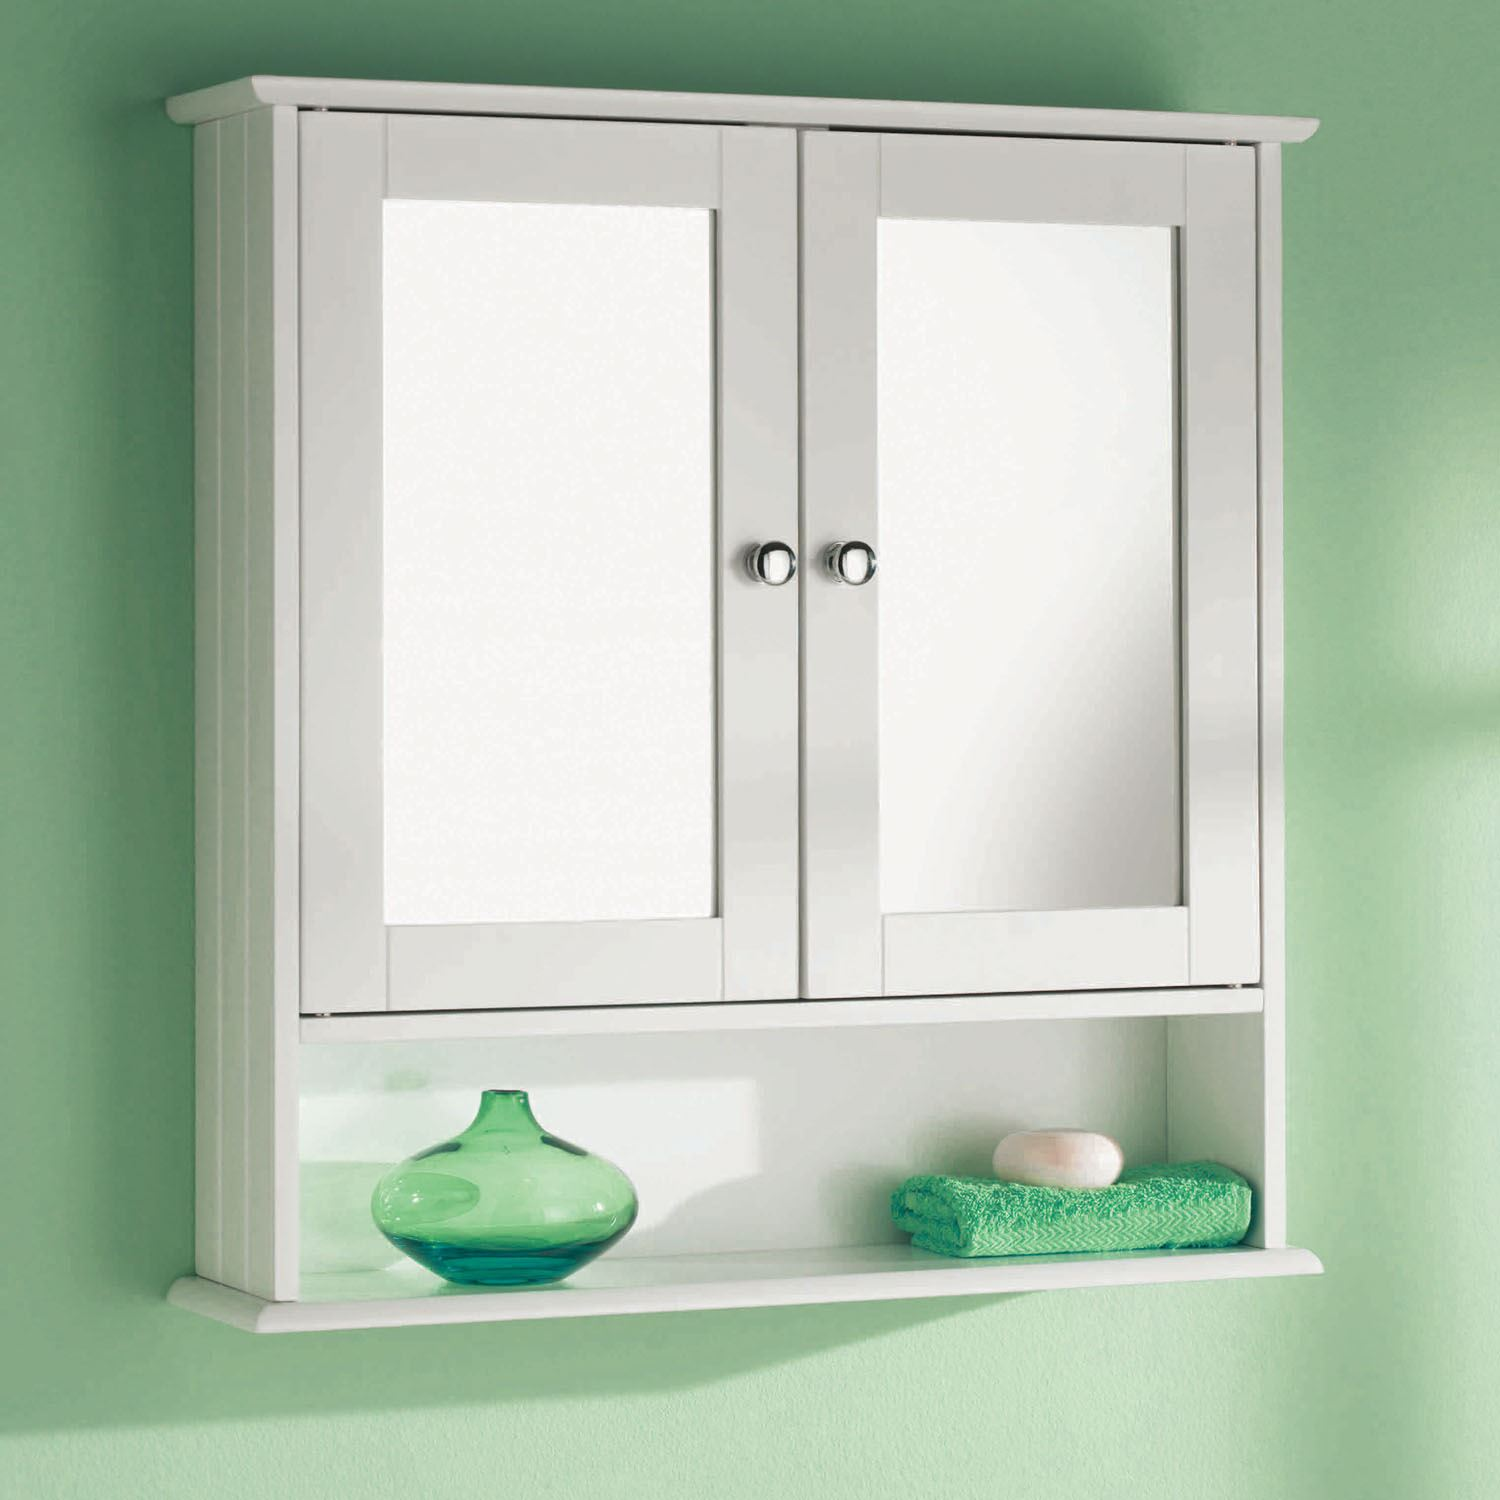 Bathroom Mirrored Cabinets White Wooden Double Mirror Door Indoor Wall Mountable